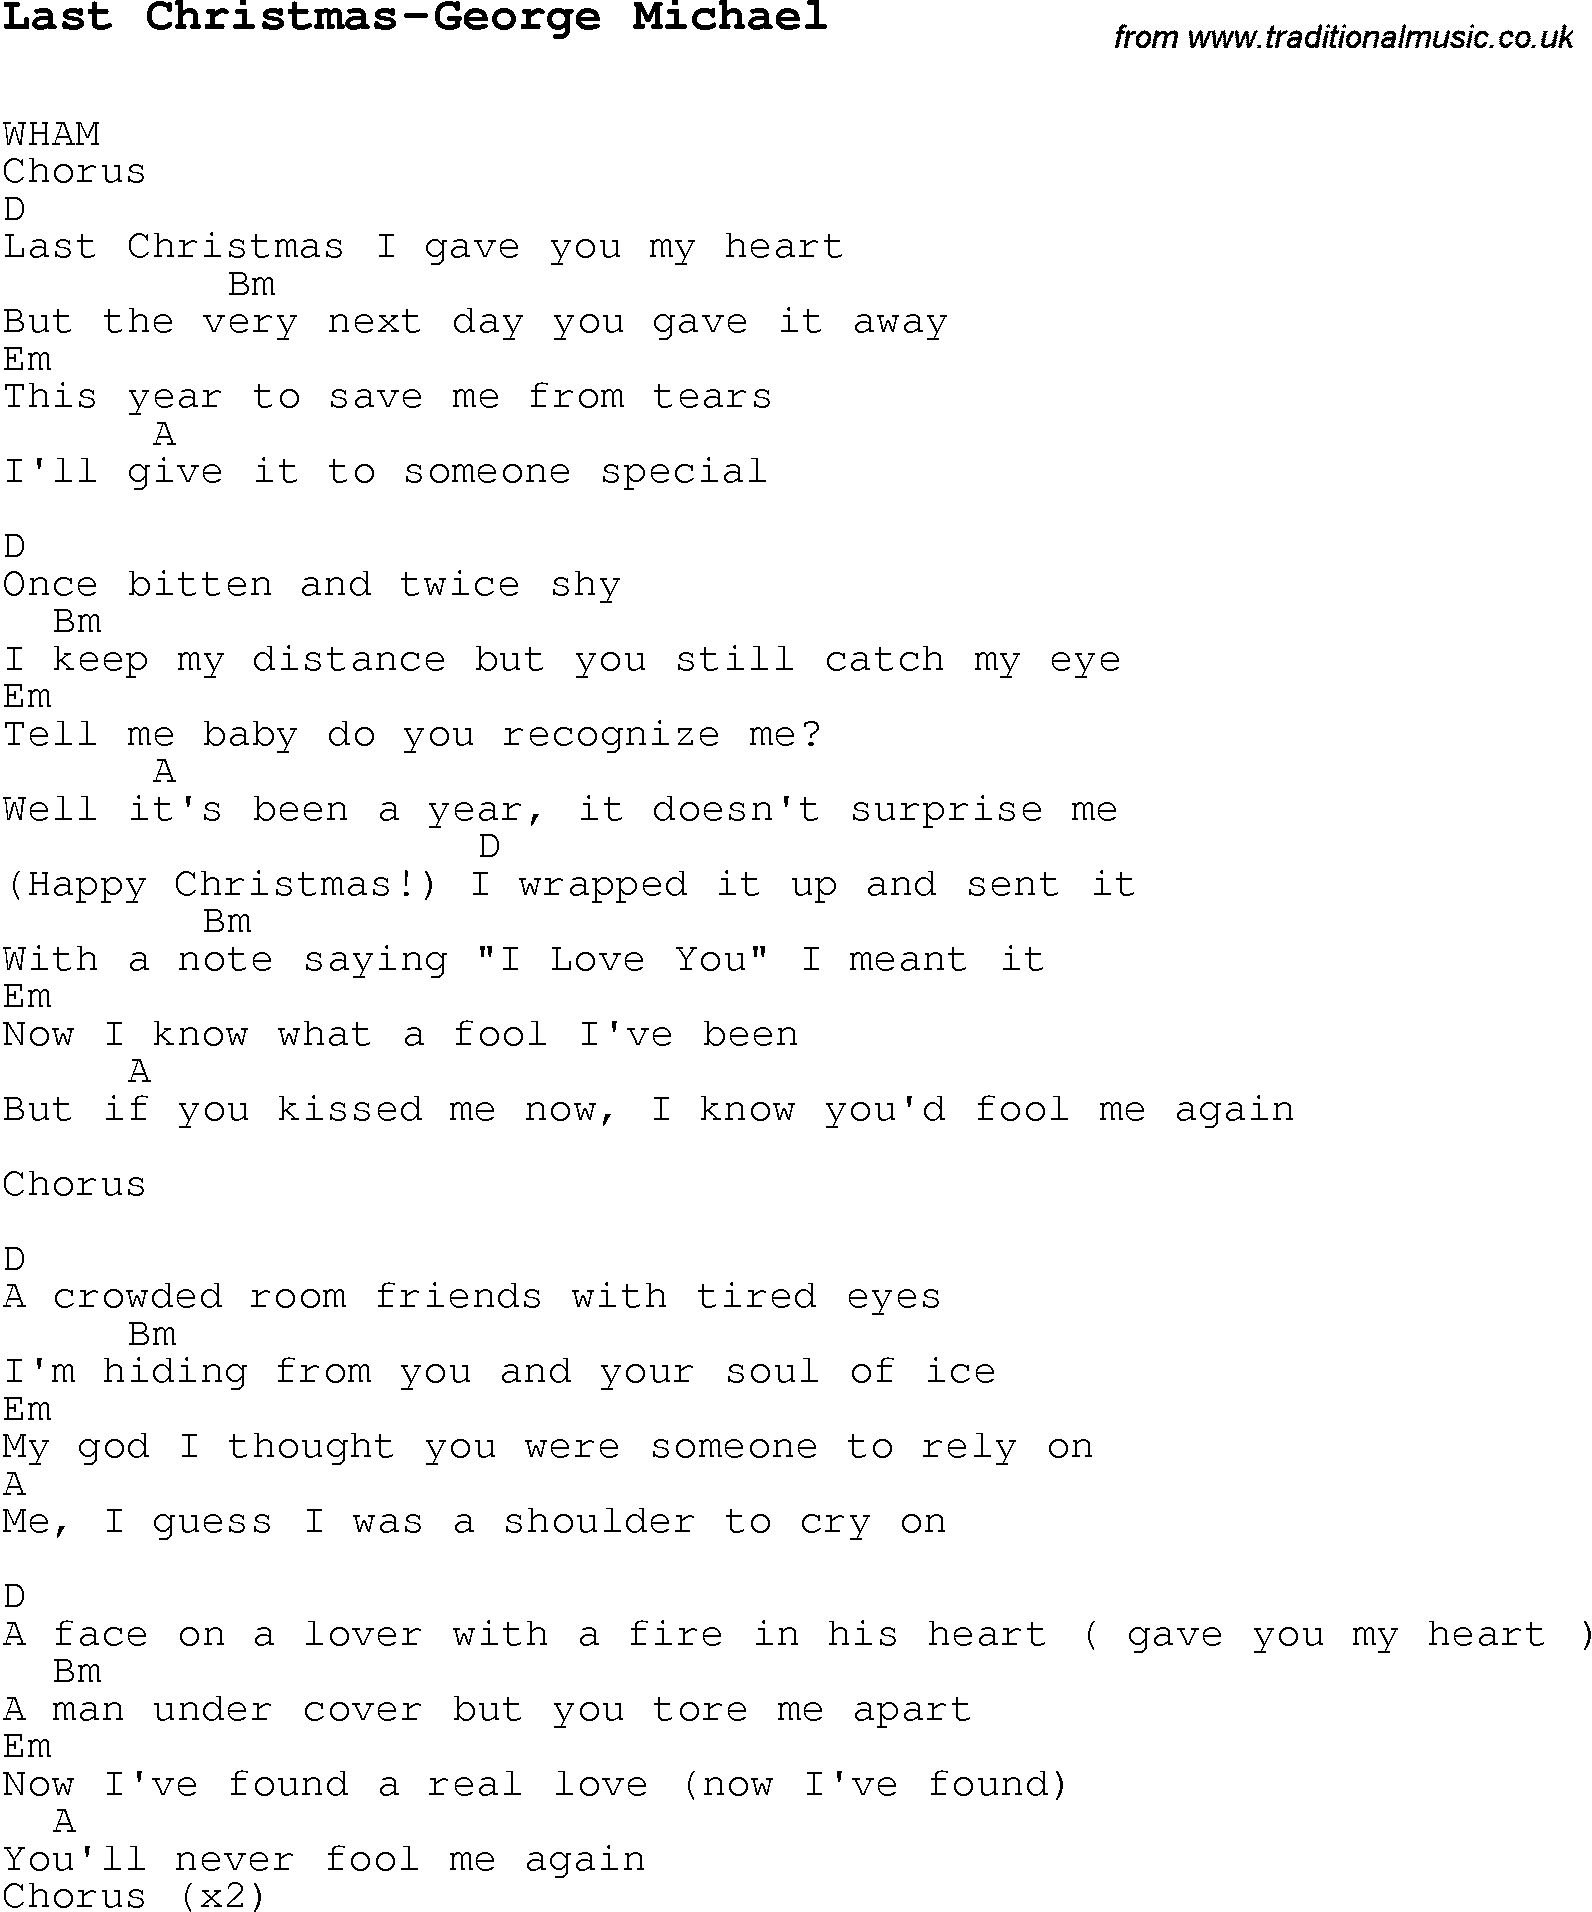 Christmas carolsong lyrics with chords for last christmas george christmas songs and carols lyrics with chords for guitar banjo for last christmas george hexwebz Choice Image